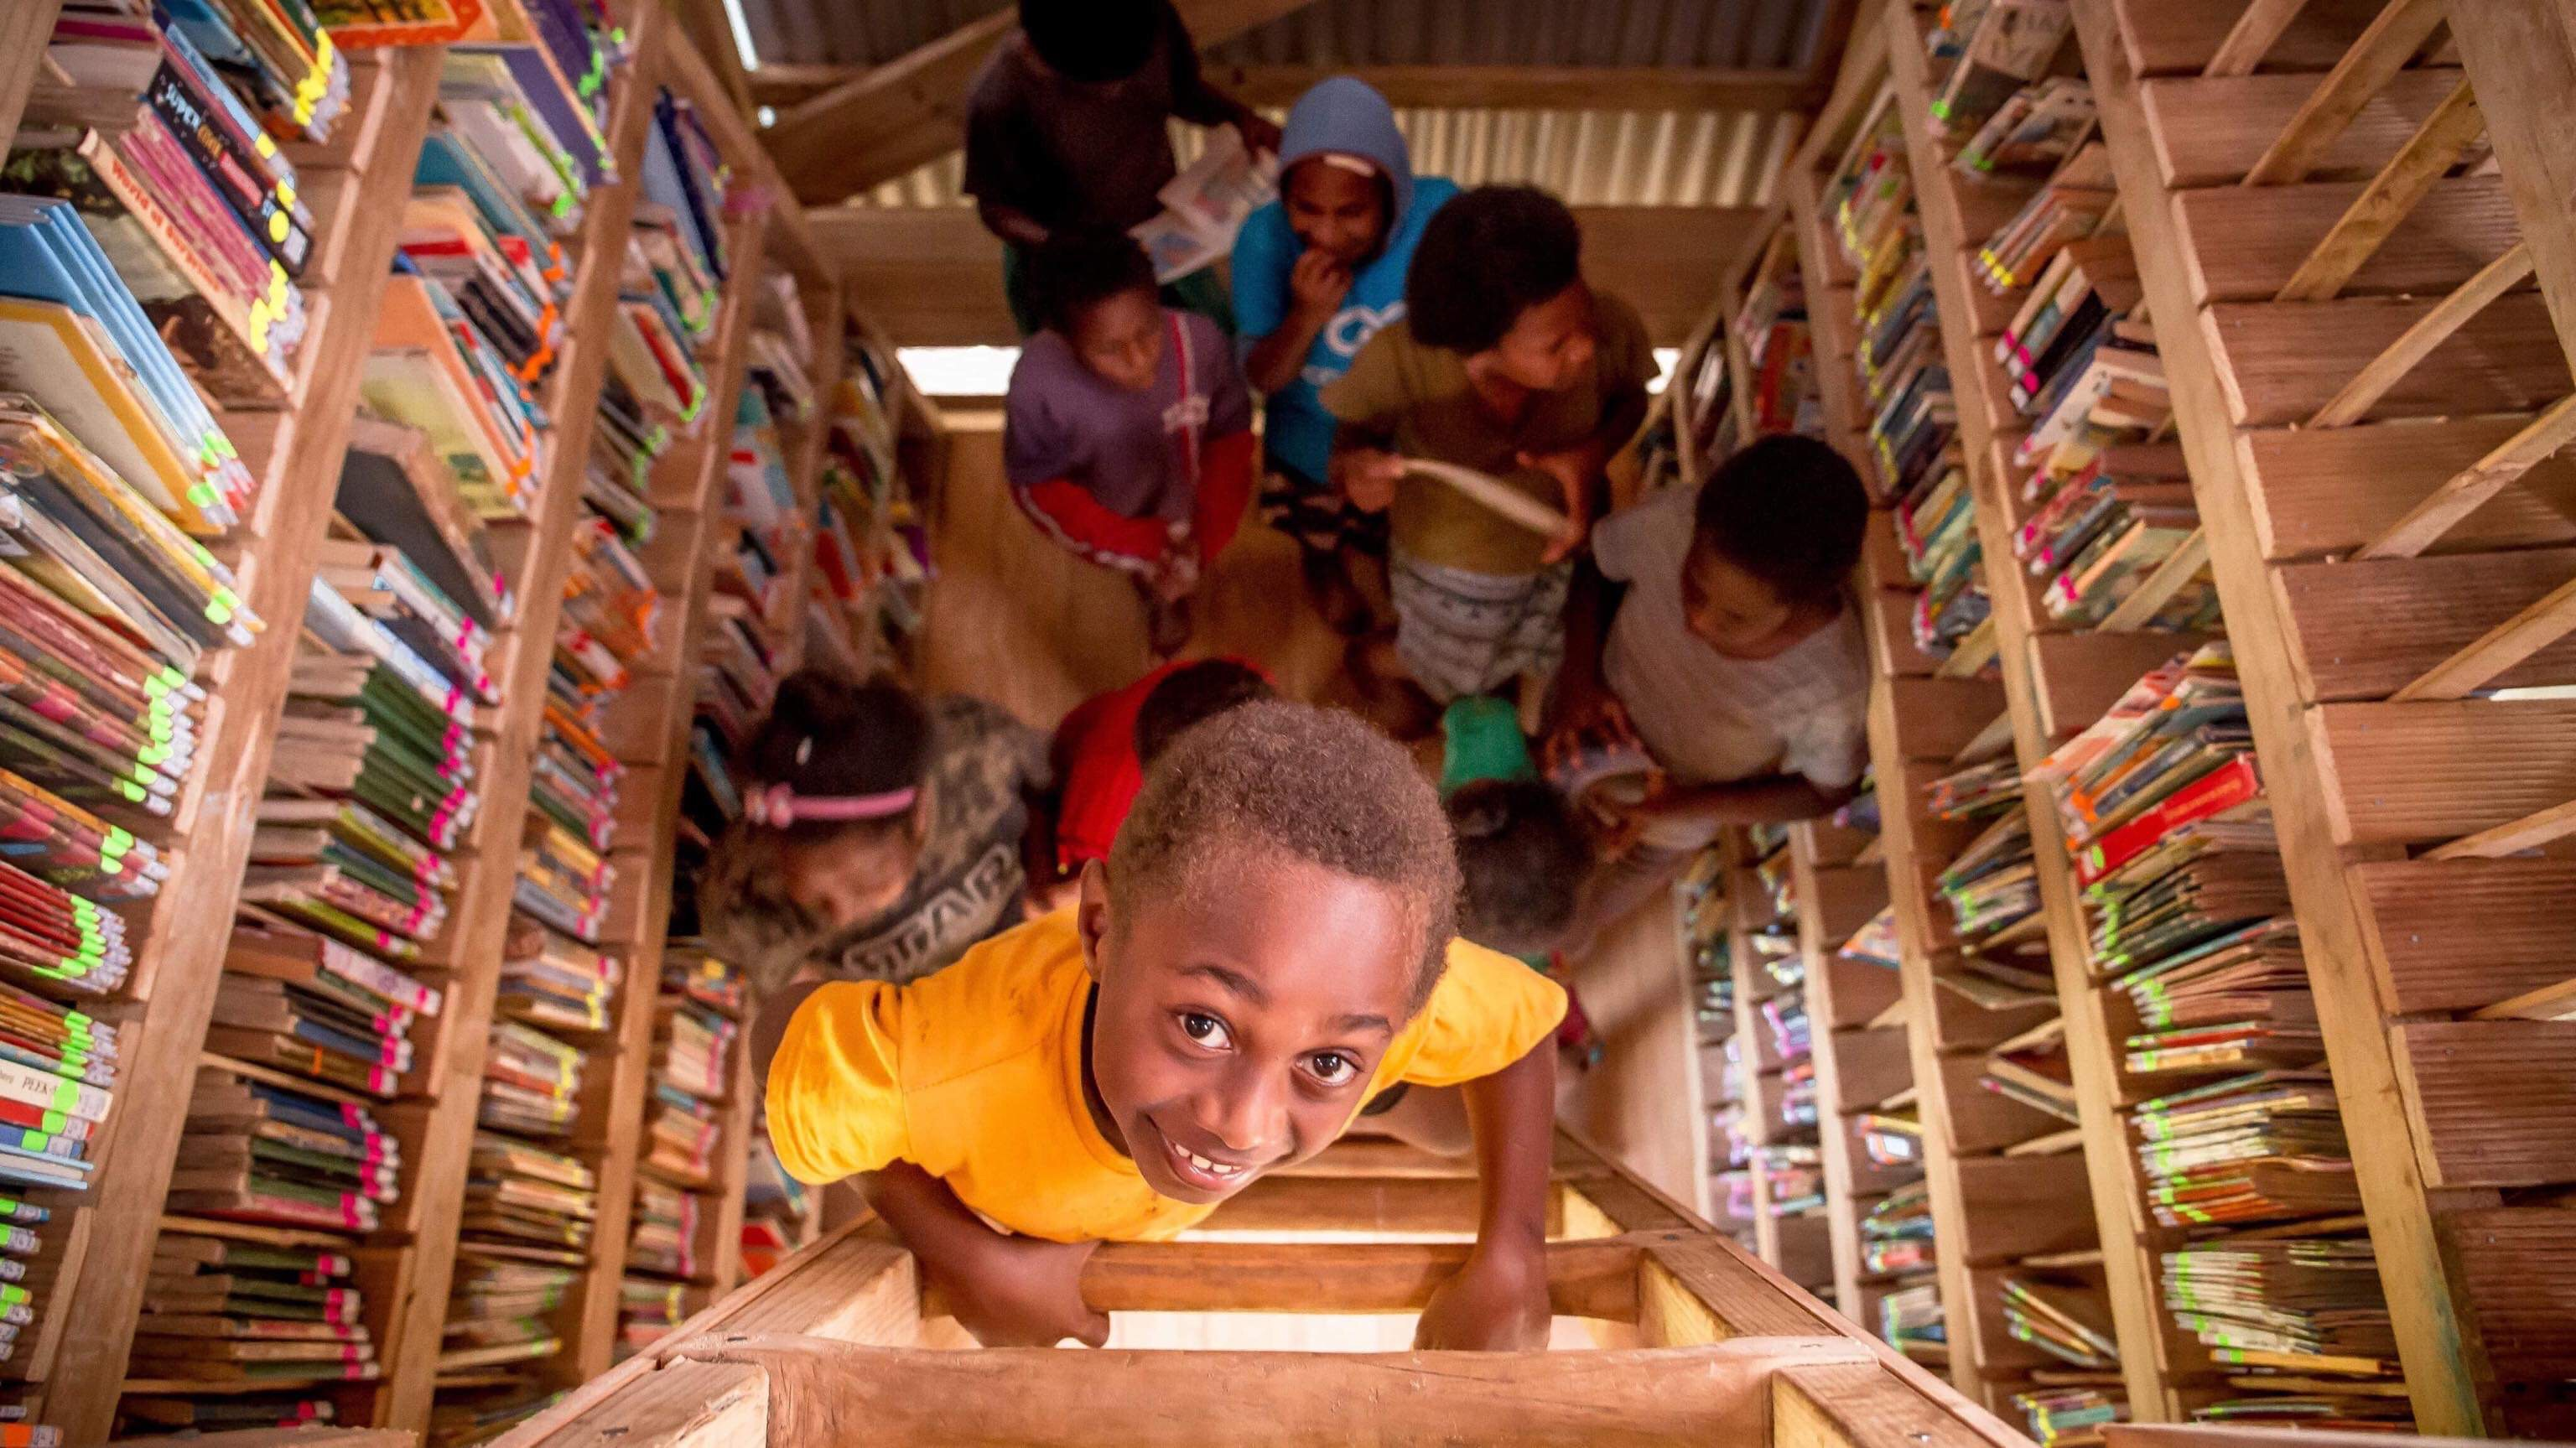 Showing girls they can do anything through building a cyclone-resistant library